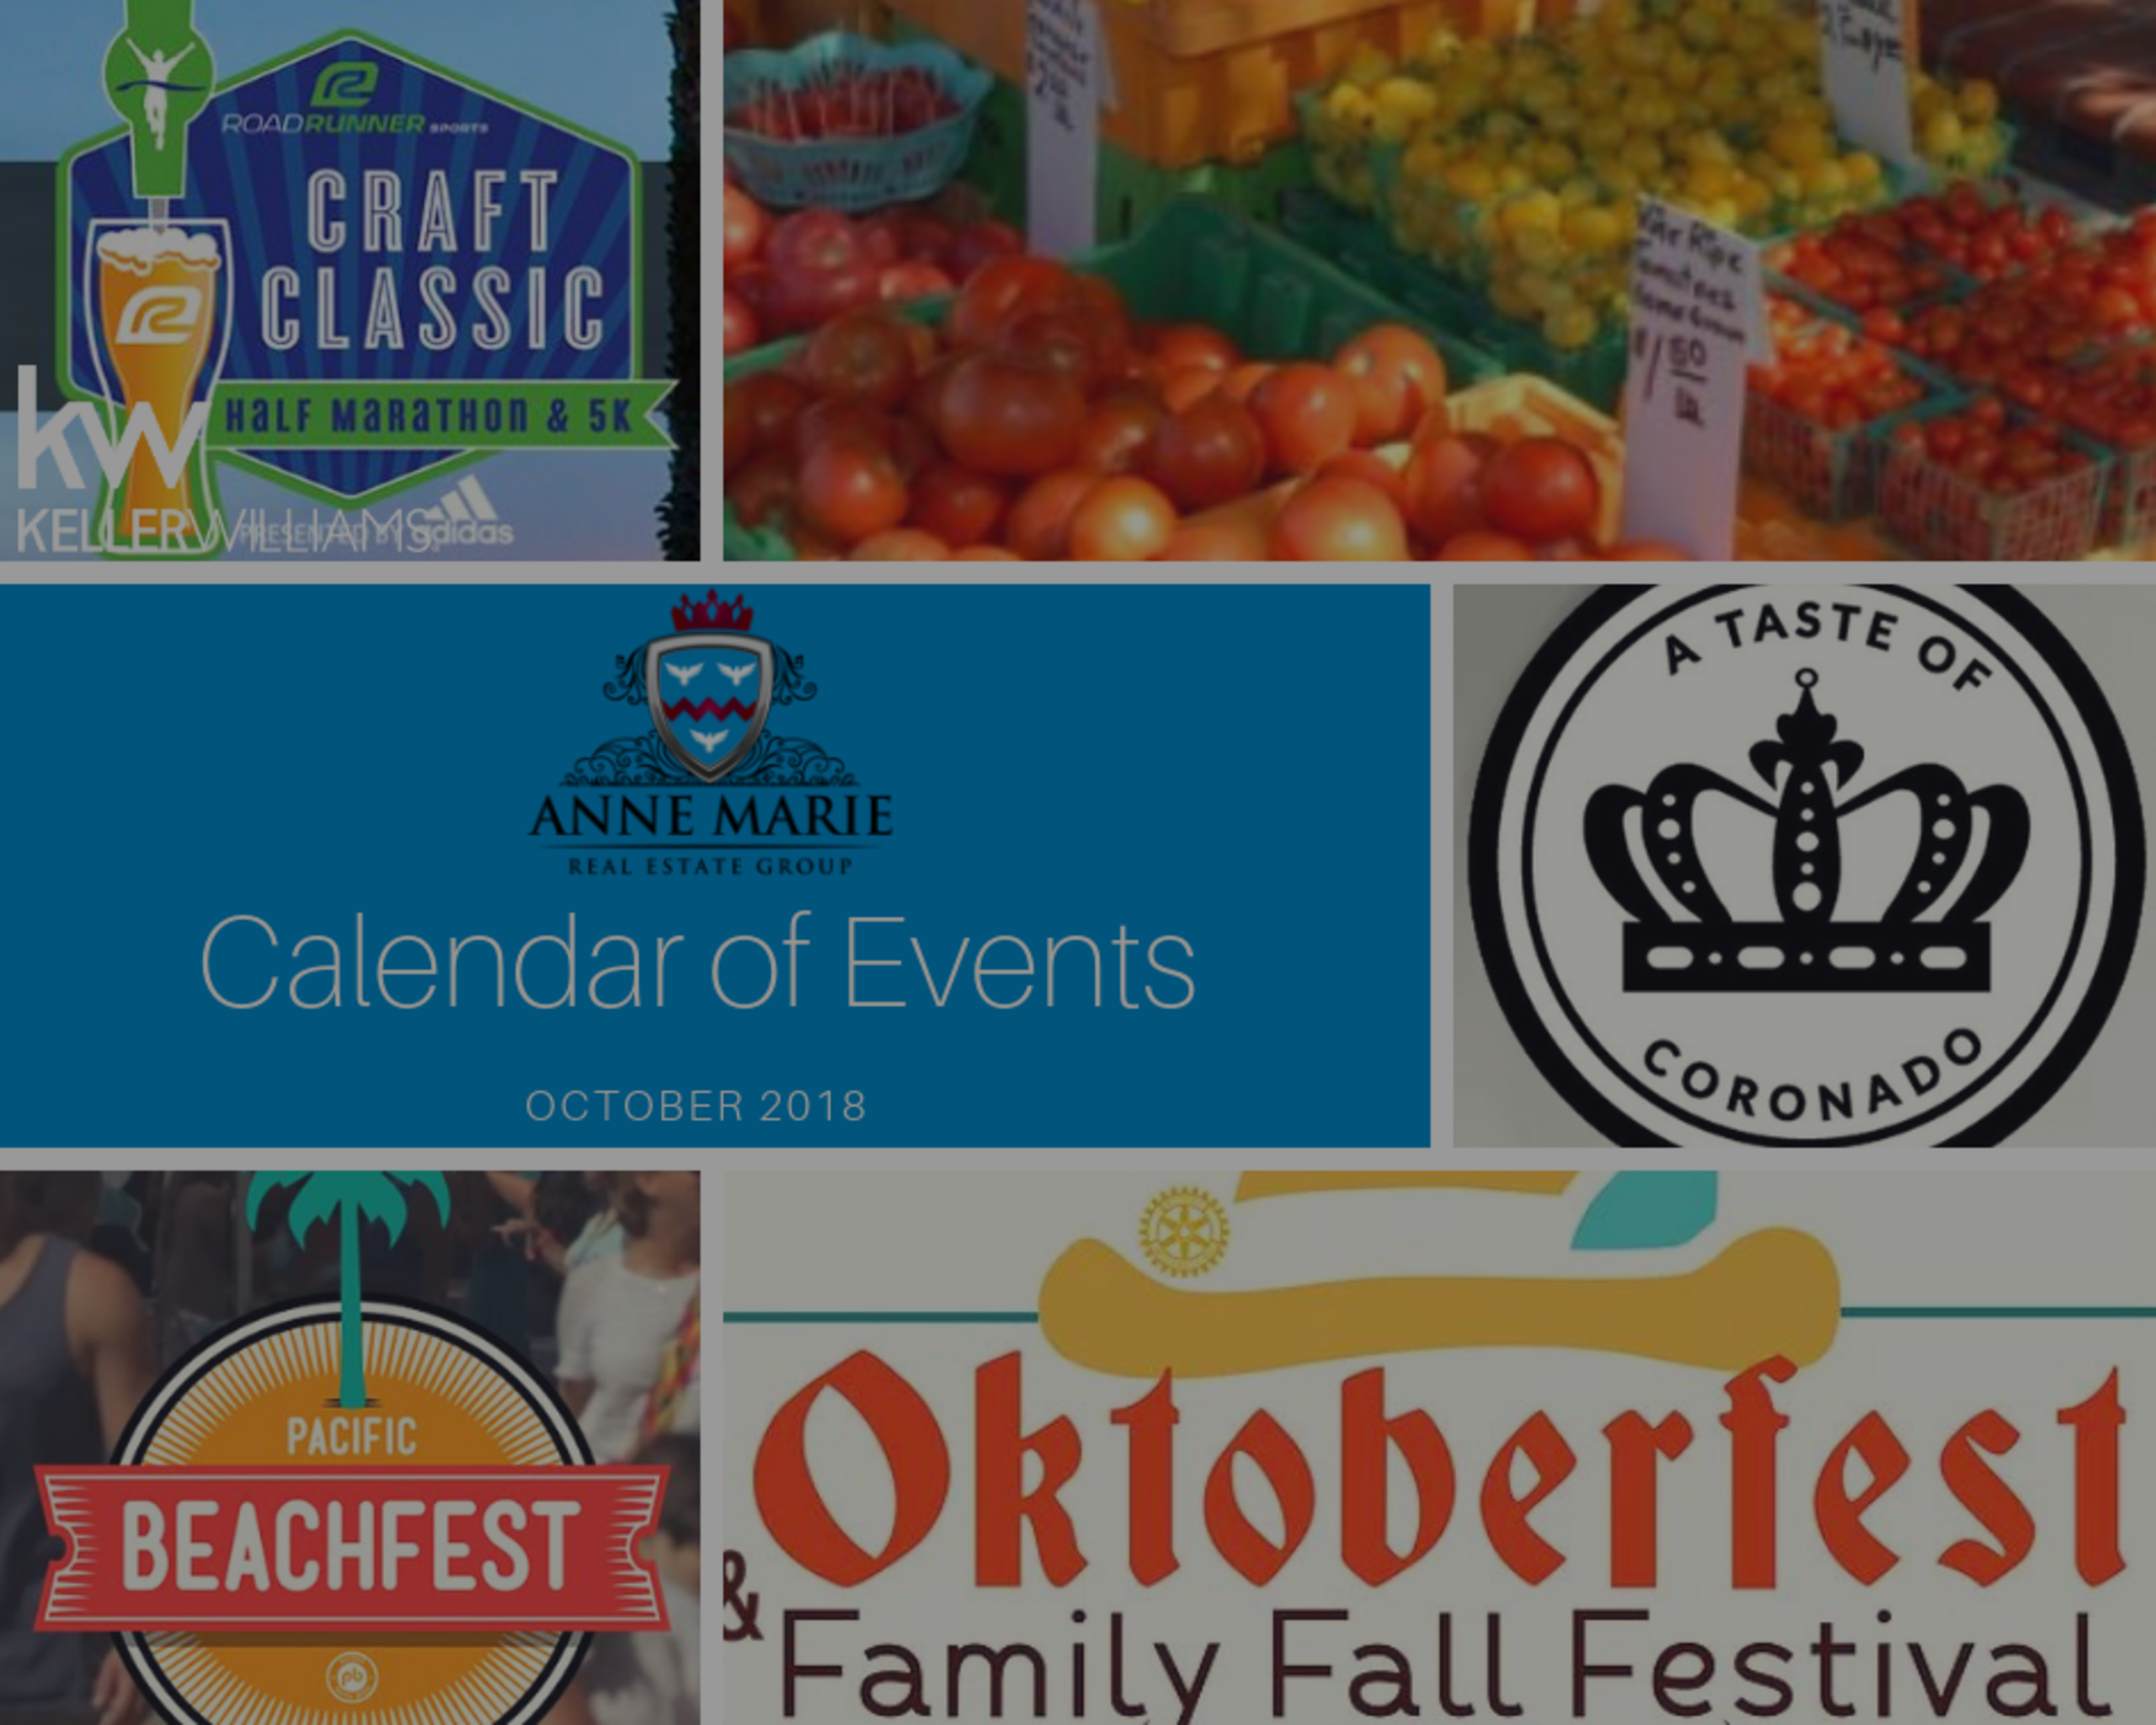 October 2018 Events in San Diego